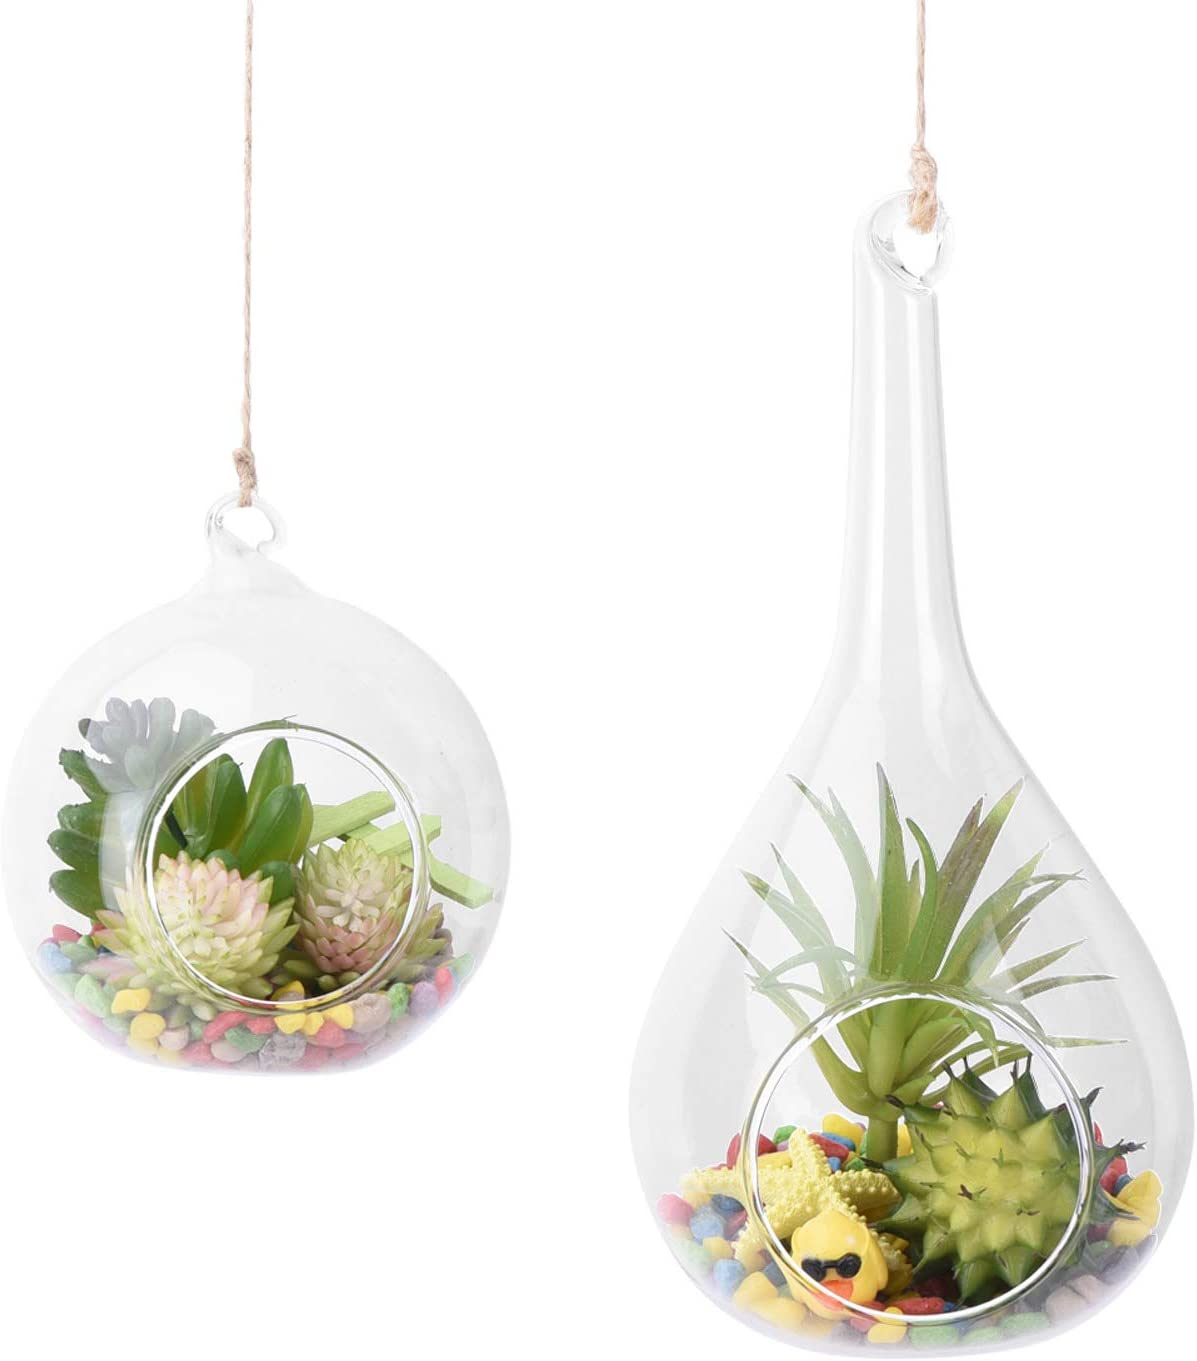 AUTOARK Glass Globe and Teardrop Hanging Succulent Air Plant Terrarium,Glass Vase Hanging Planter,Candle Holder,Home & Office Decor Accent,APT-013